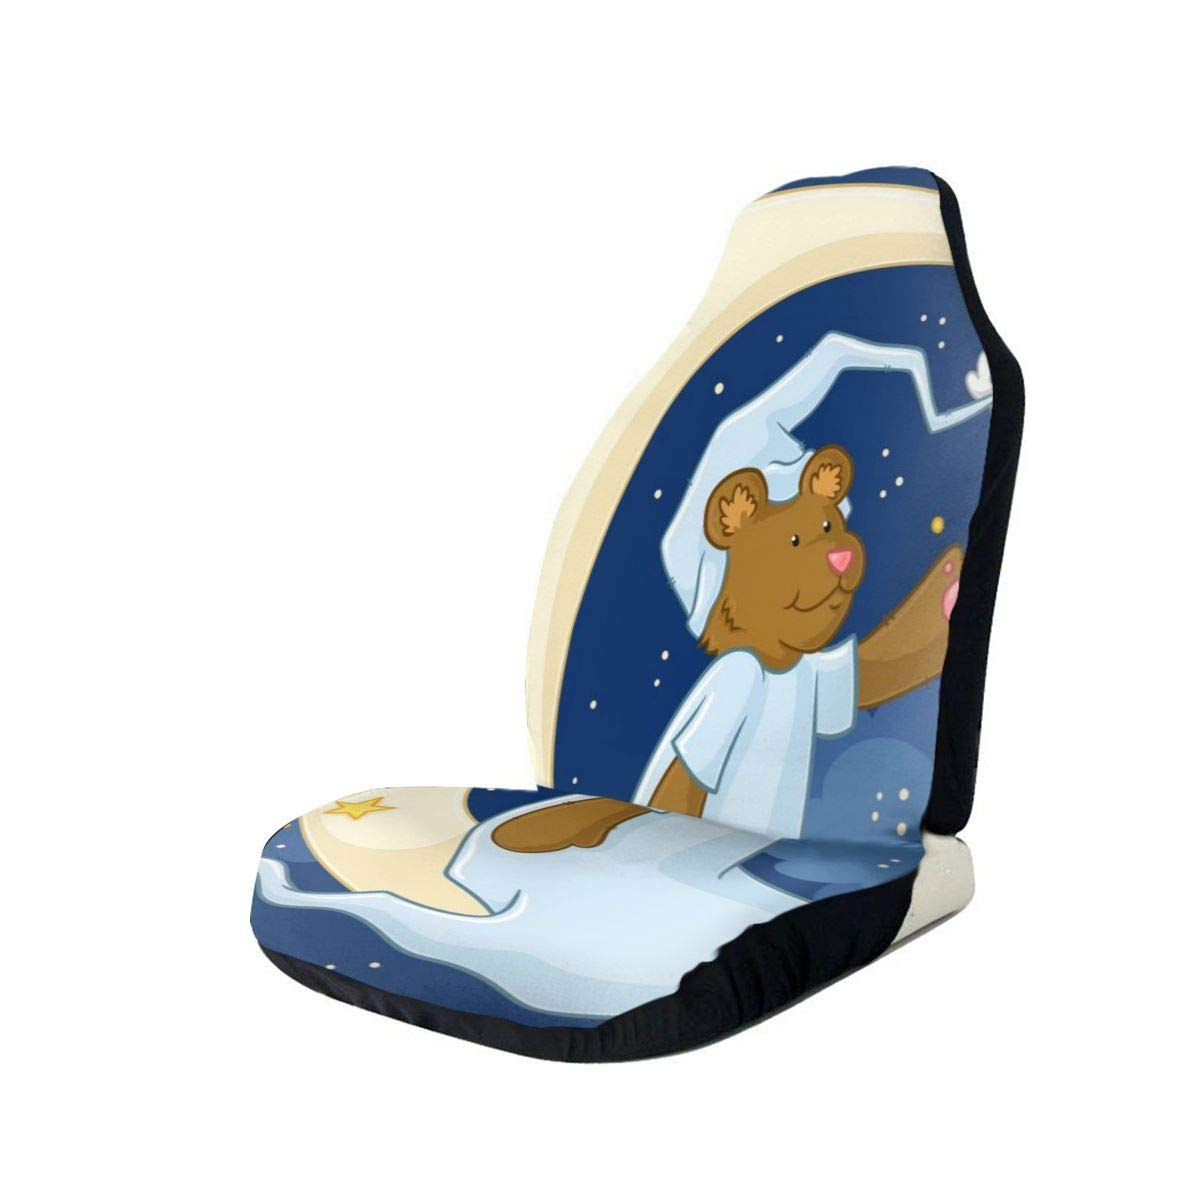 Car Seat Cover, Universal Car Seat Covers, Marvellous The Little Bear Seat Covers Universal for Front Seat, Automobile Seats Protector Fits Most Car Trucks SUV